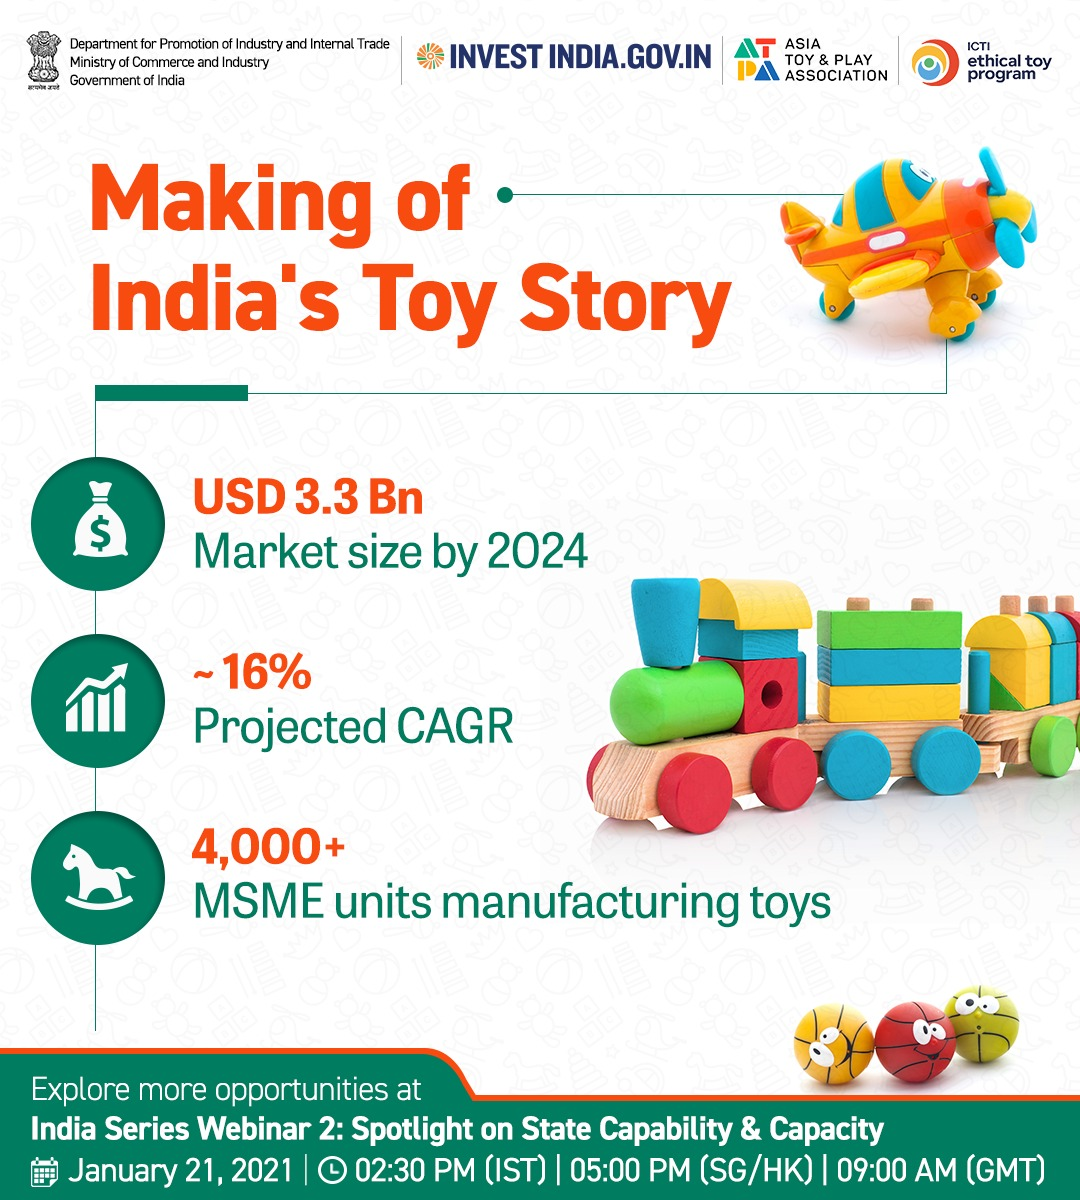 #NewIndia is all set to establish itself as the toy manufacturer of the world! ⛳🧸   Register NOW to explore the investment opportunities at the webinar👉🏼  #MakeInIndia #InvestInIndia @makeinindia